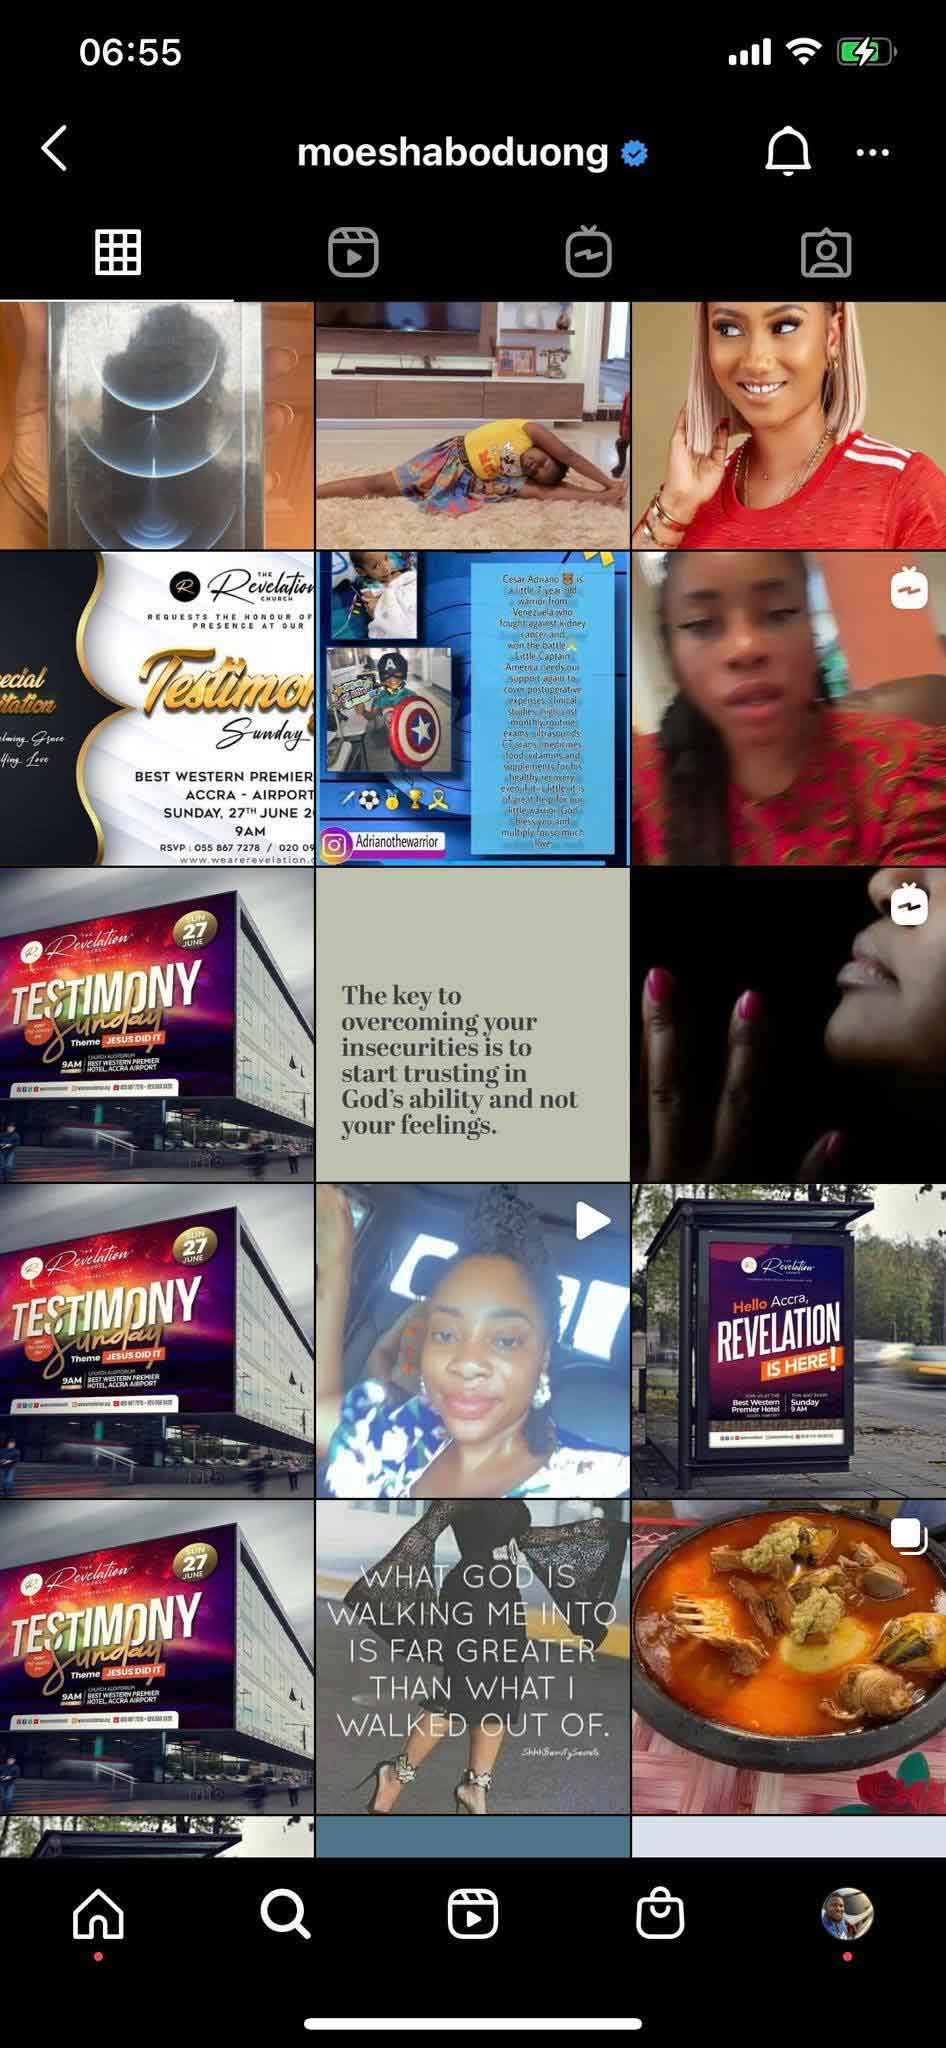 Moesha Boduong deletes all pono videos and photos on Instagram